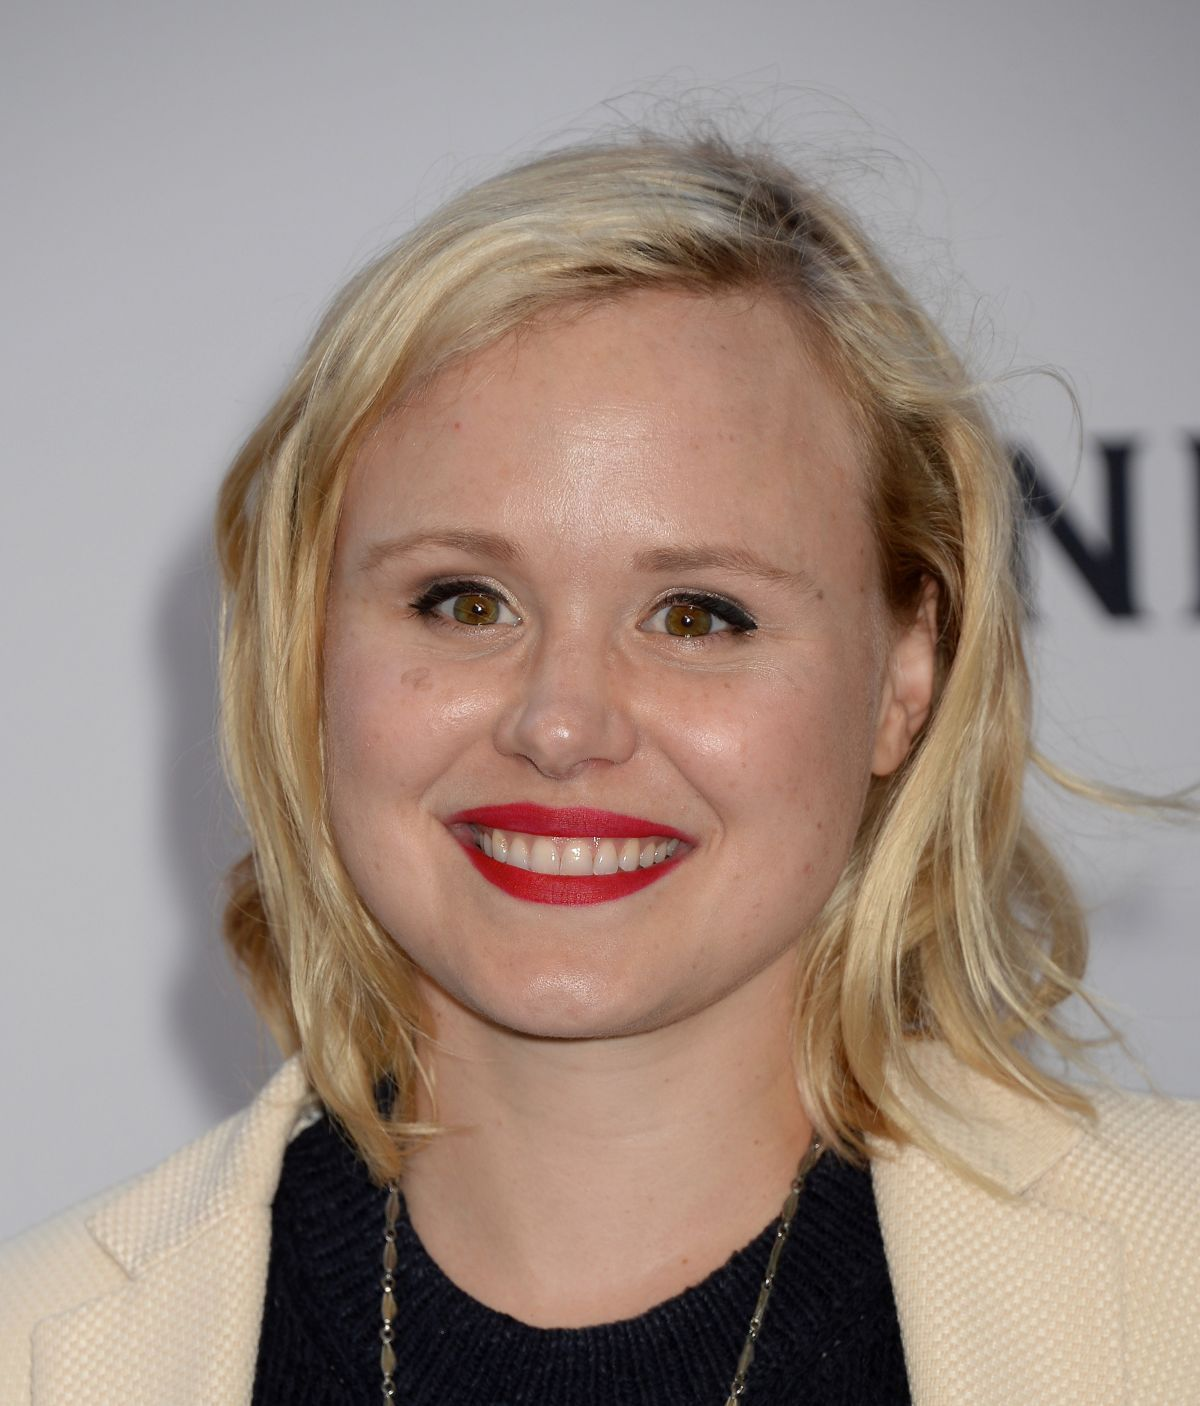 Alison Pill Fotos pinvirgil g on alison pill | alison pill, black, film